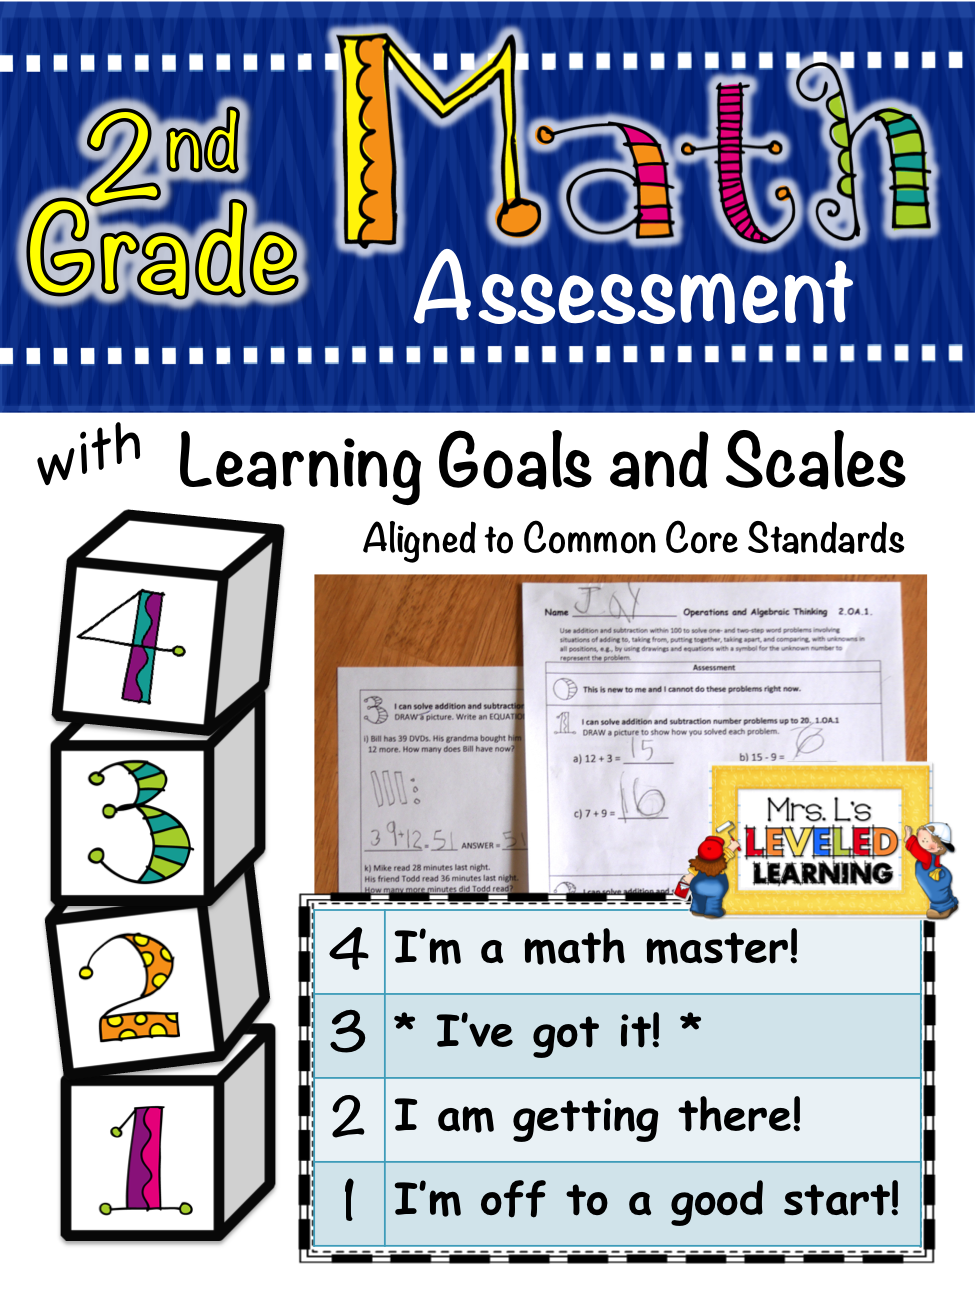 Mrs  L's Leveled Learning | Successful Differentiation with